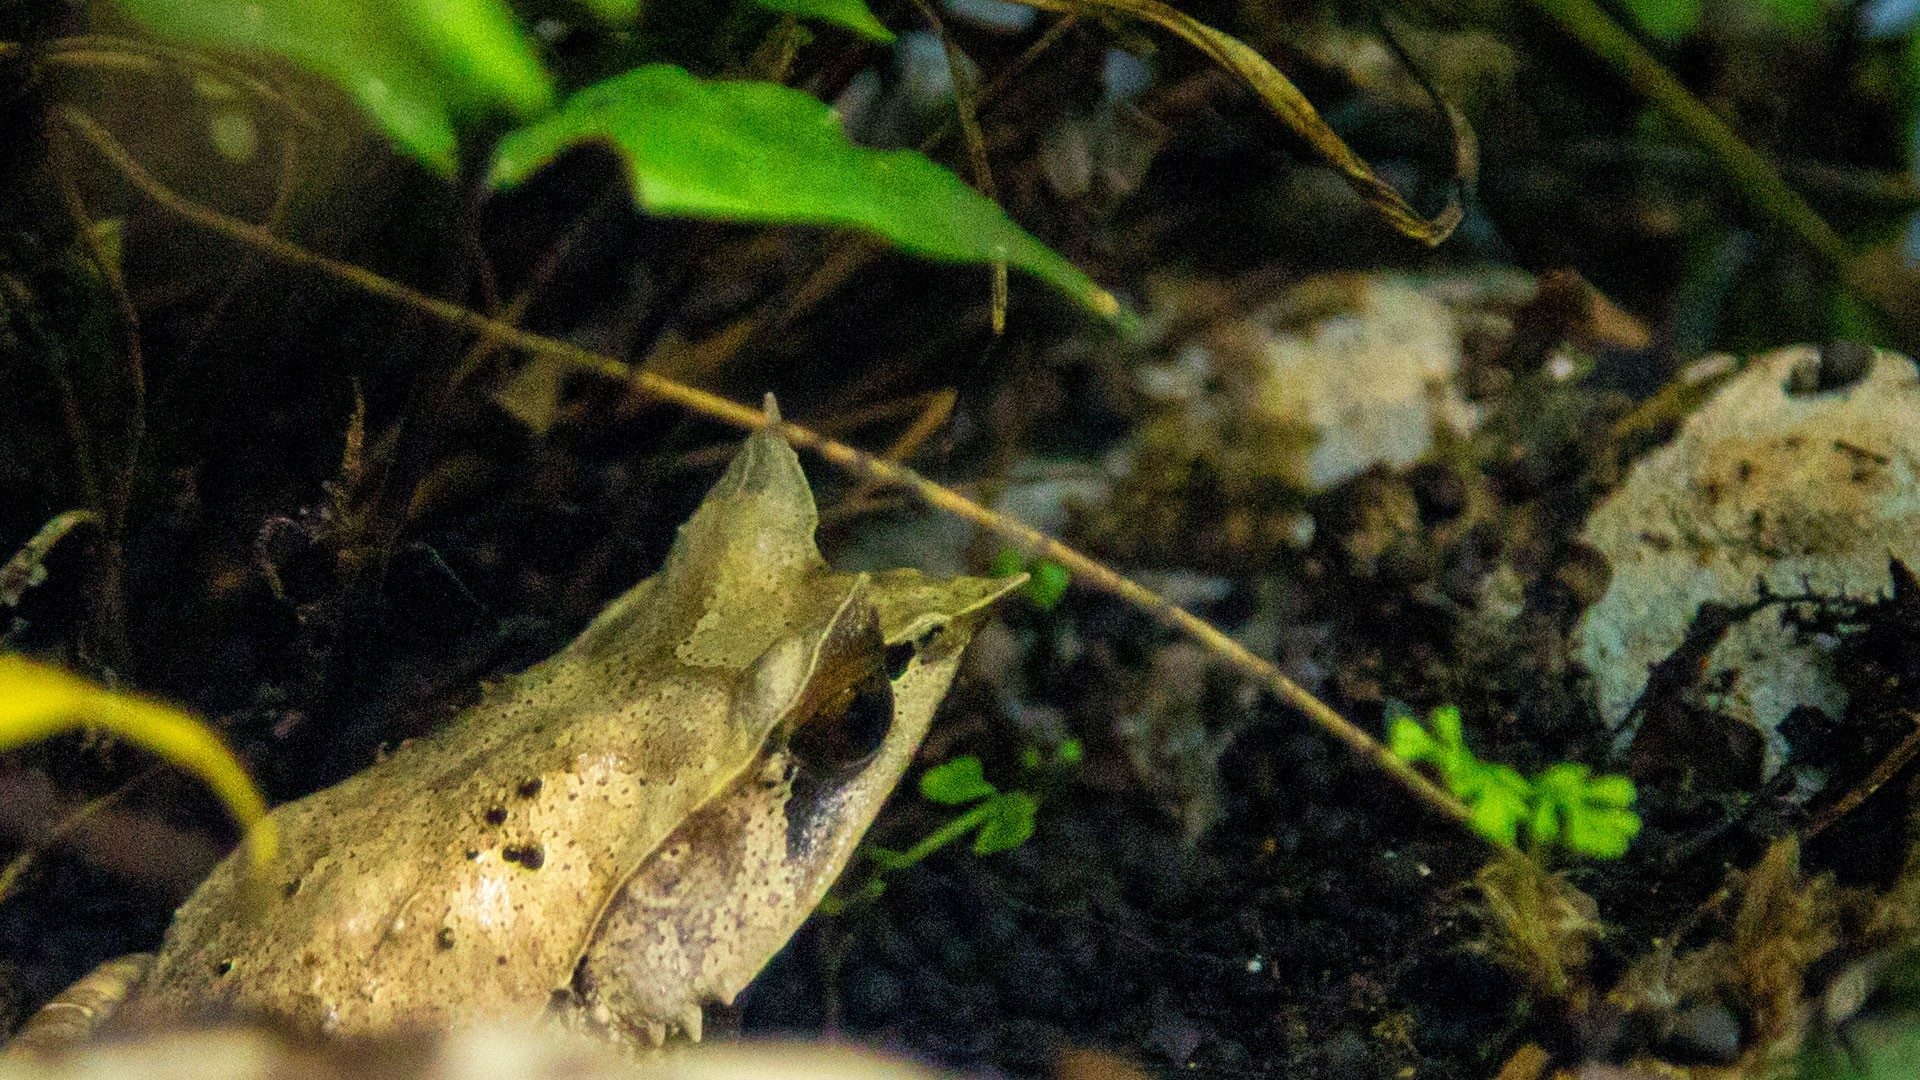 Malaysian Horned Frog